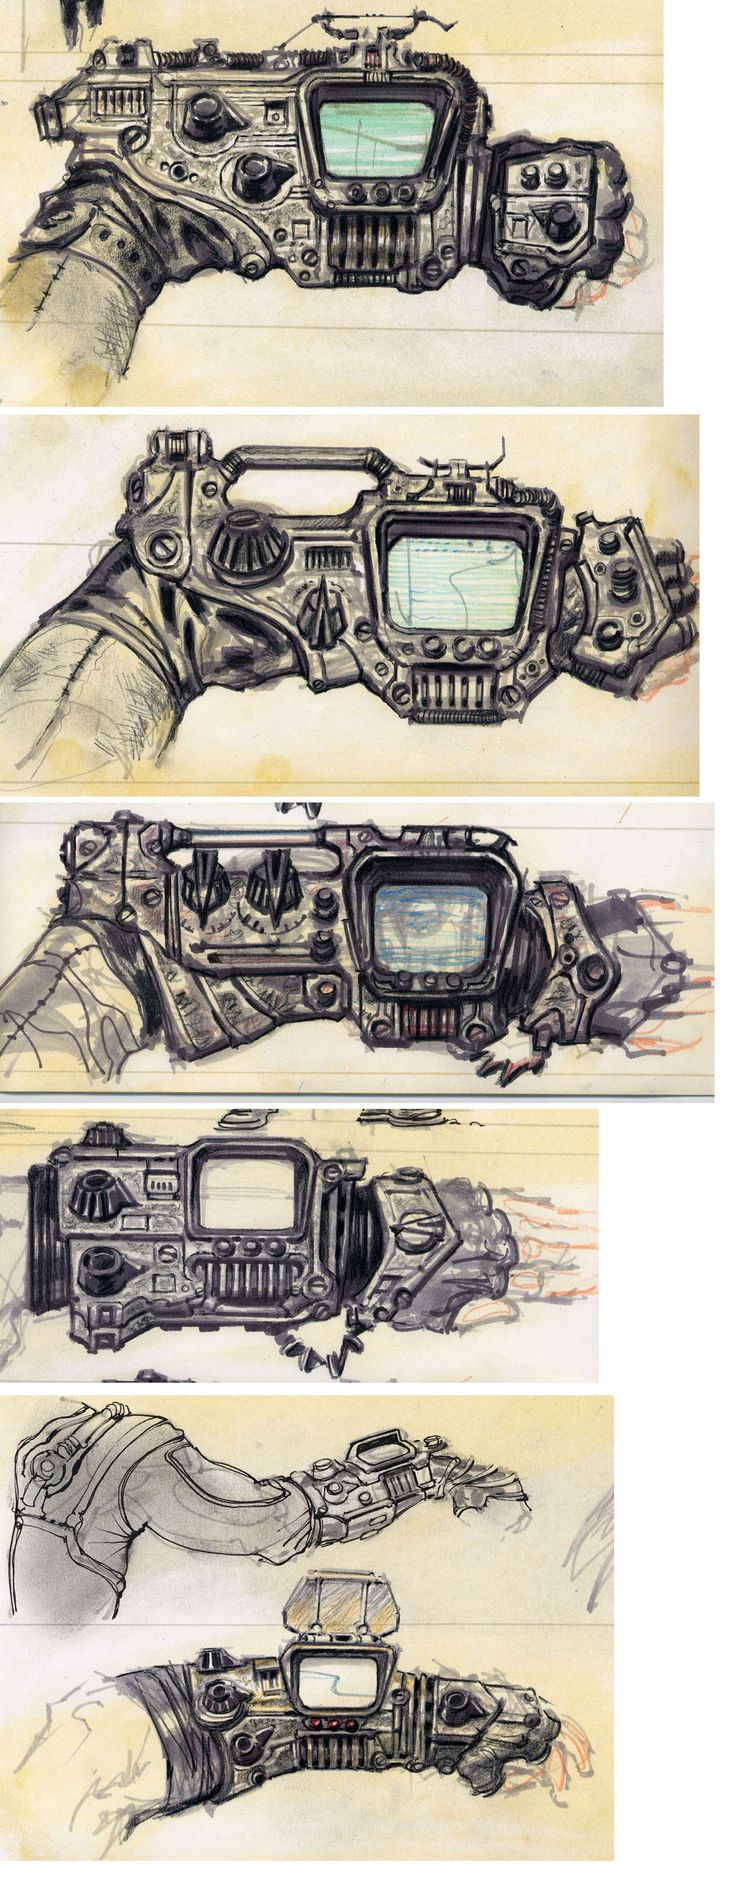 Fallout 3 miscellaneous items concept art